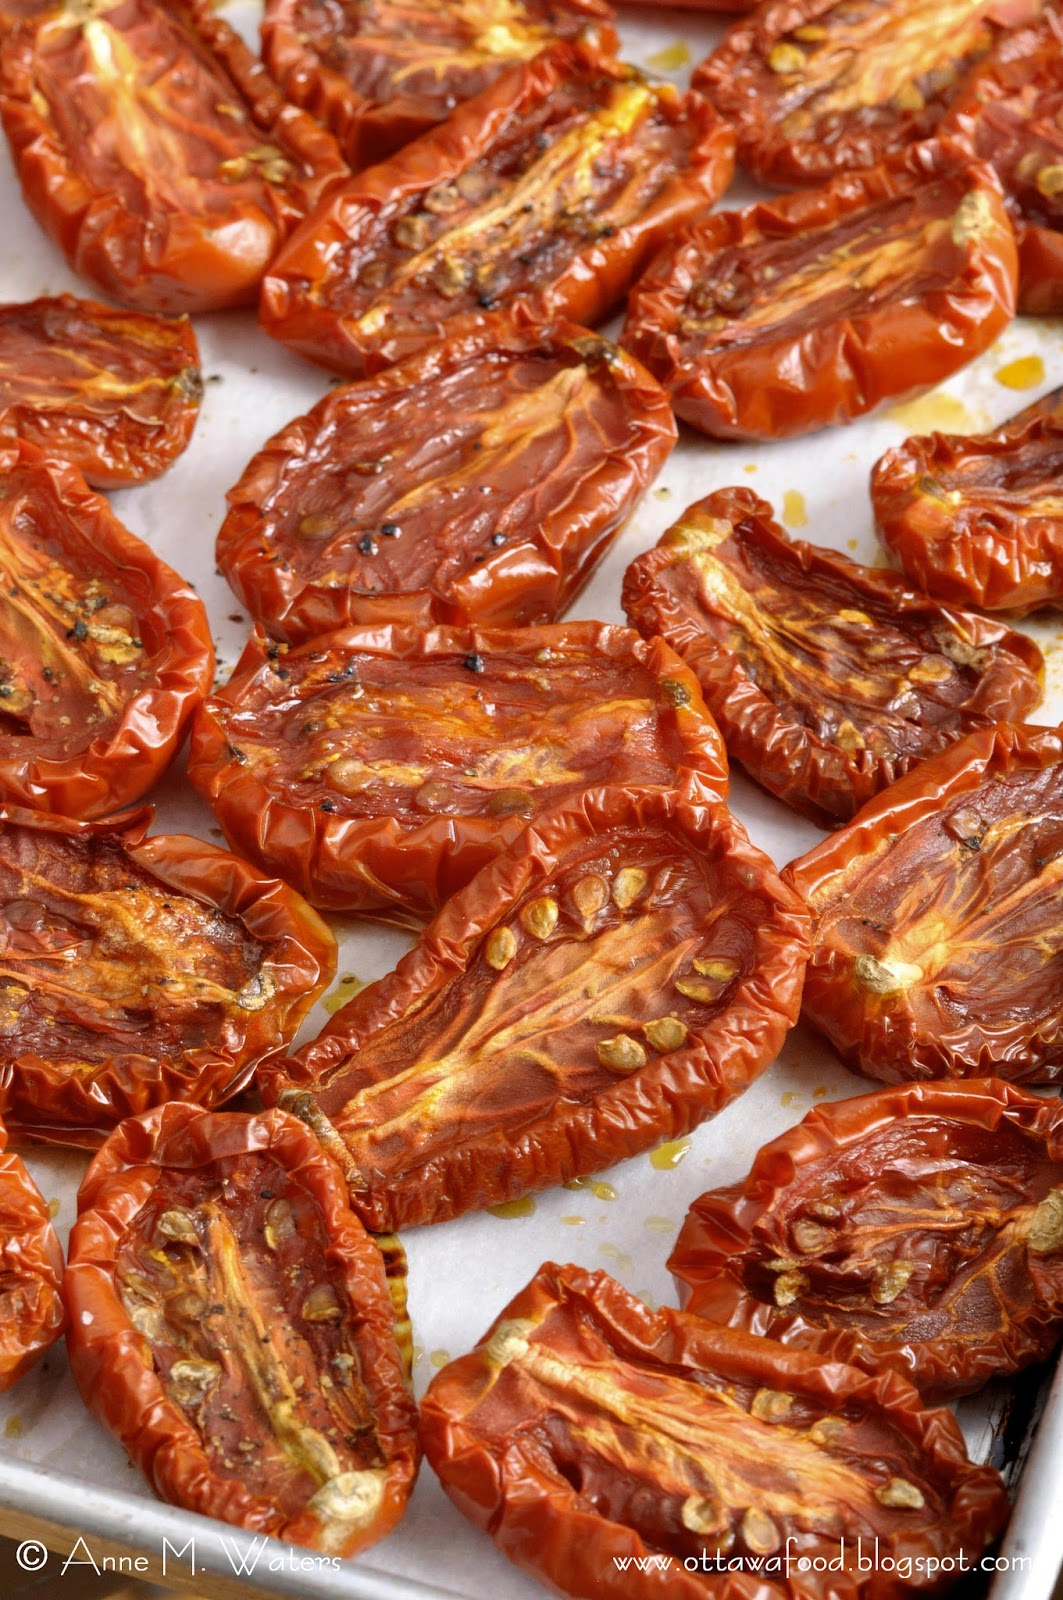 If Music be the Food of Love, Play On: Oven-Roasted Tomatoes